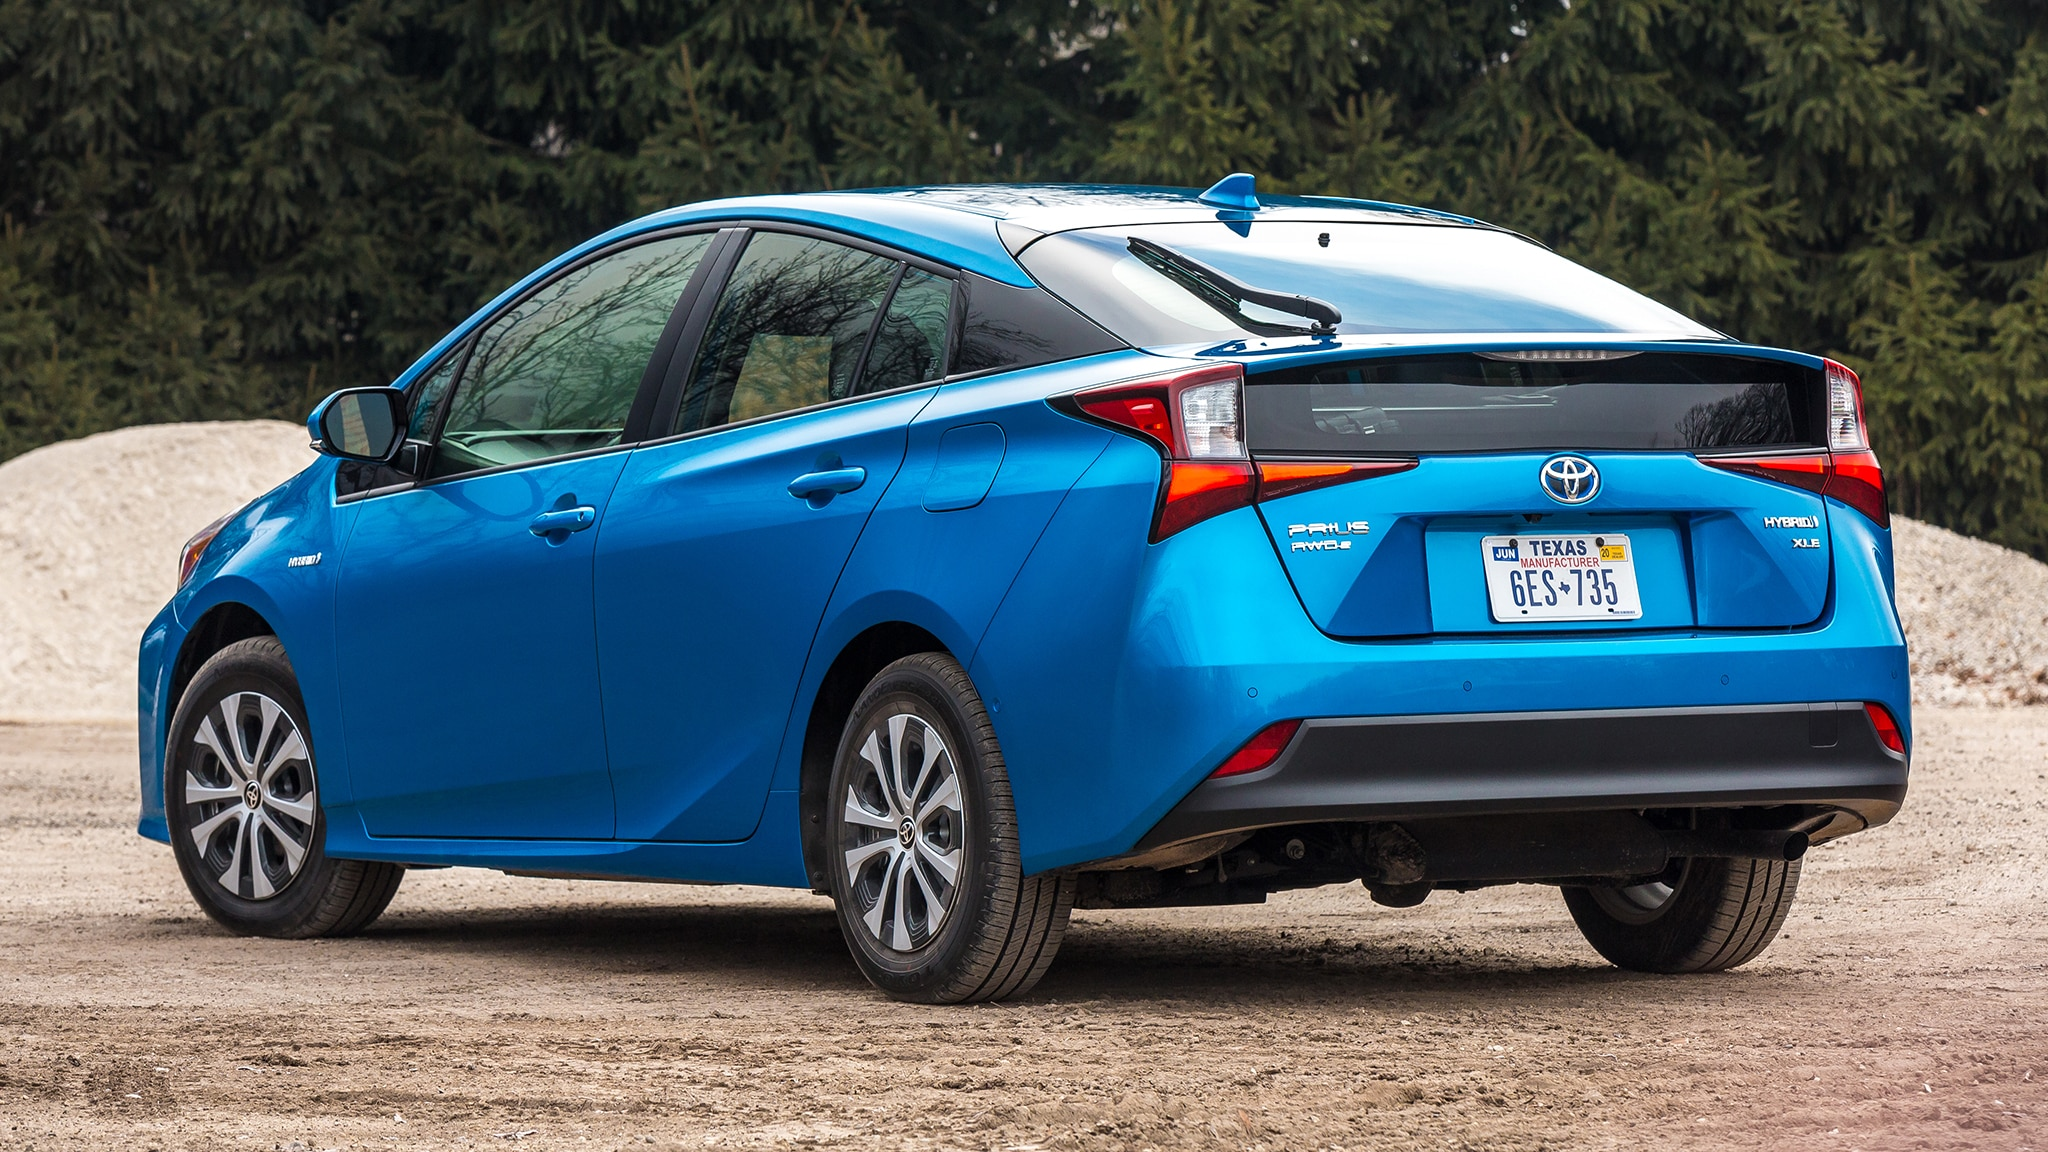 2019 toyota prius awd e first drive review more all weather capability automobile magazine. Black Bedroom Furniture Sets. Home Design Ideas